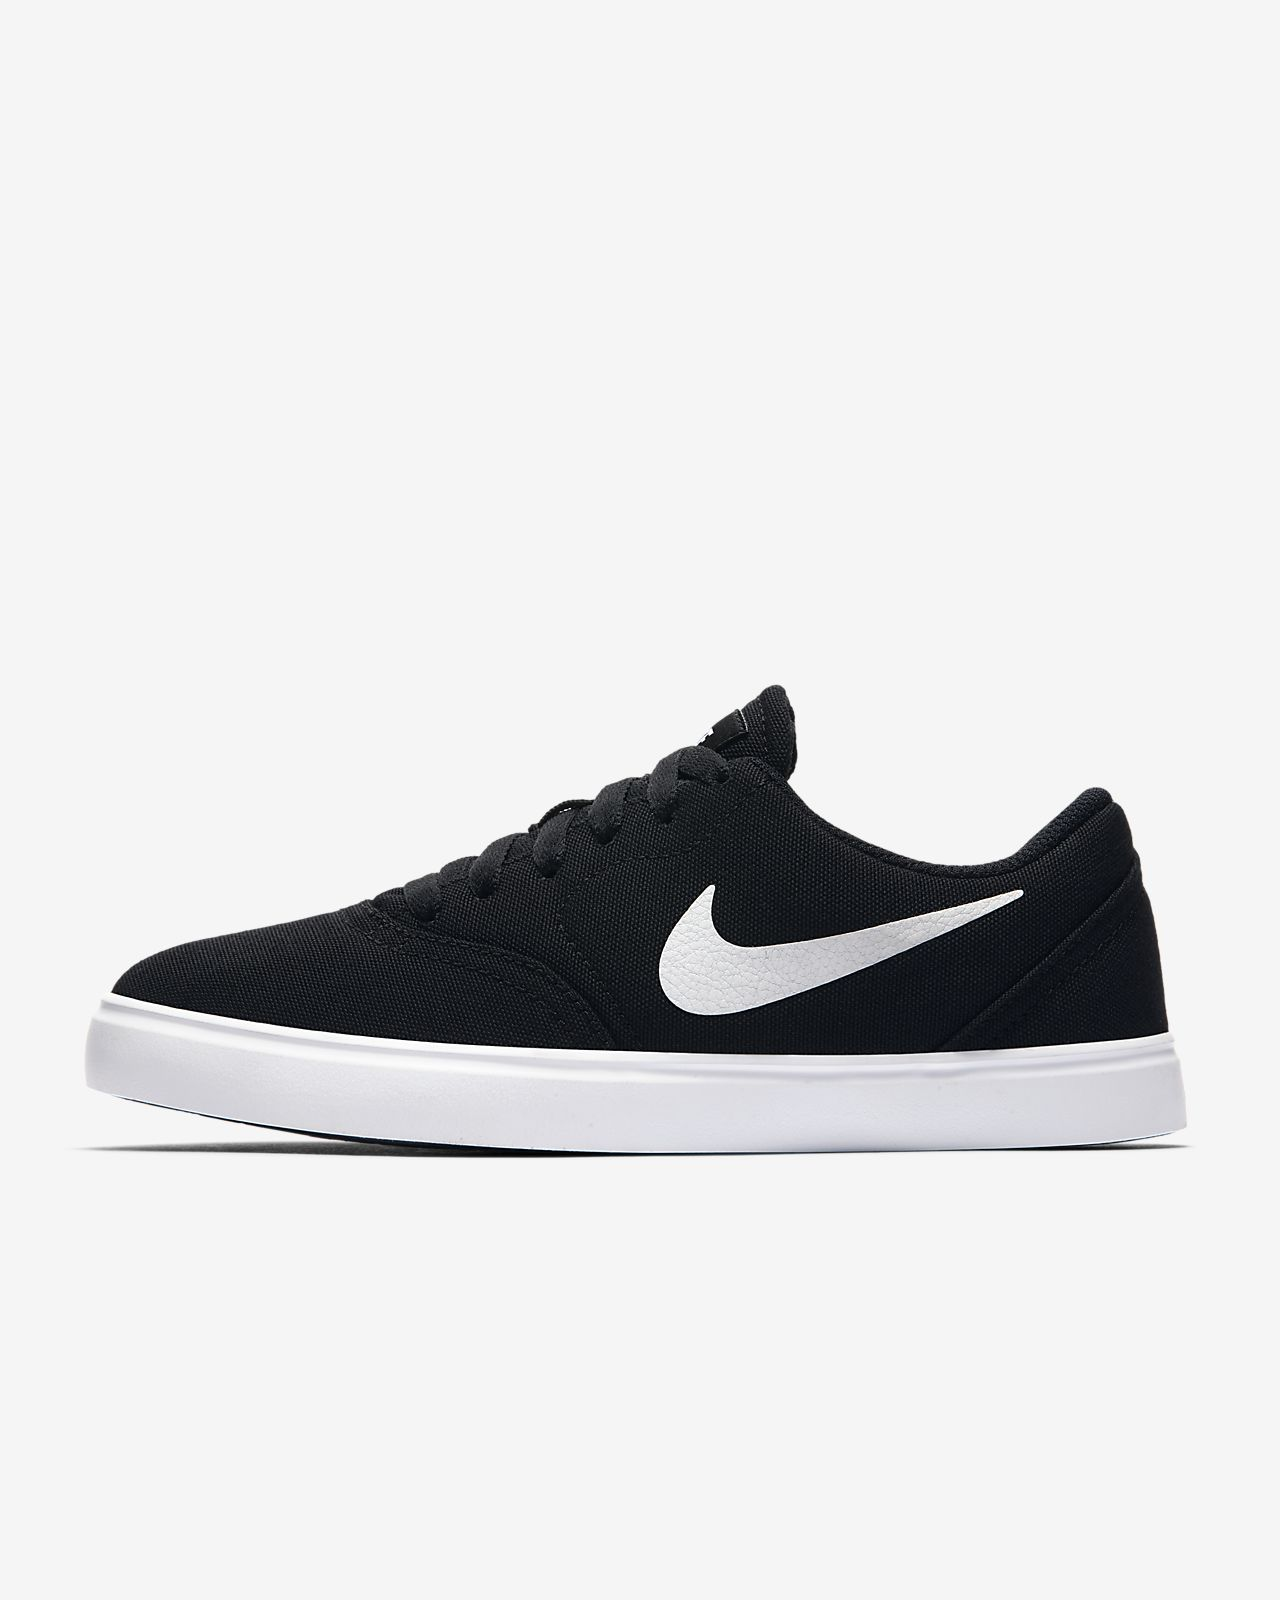 Nike SB Check Canvas Older Kids' Skateboarding Shoe